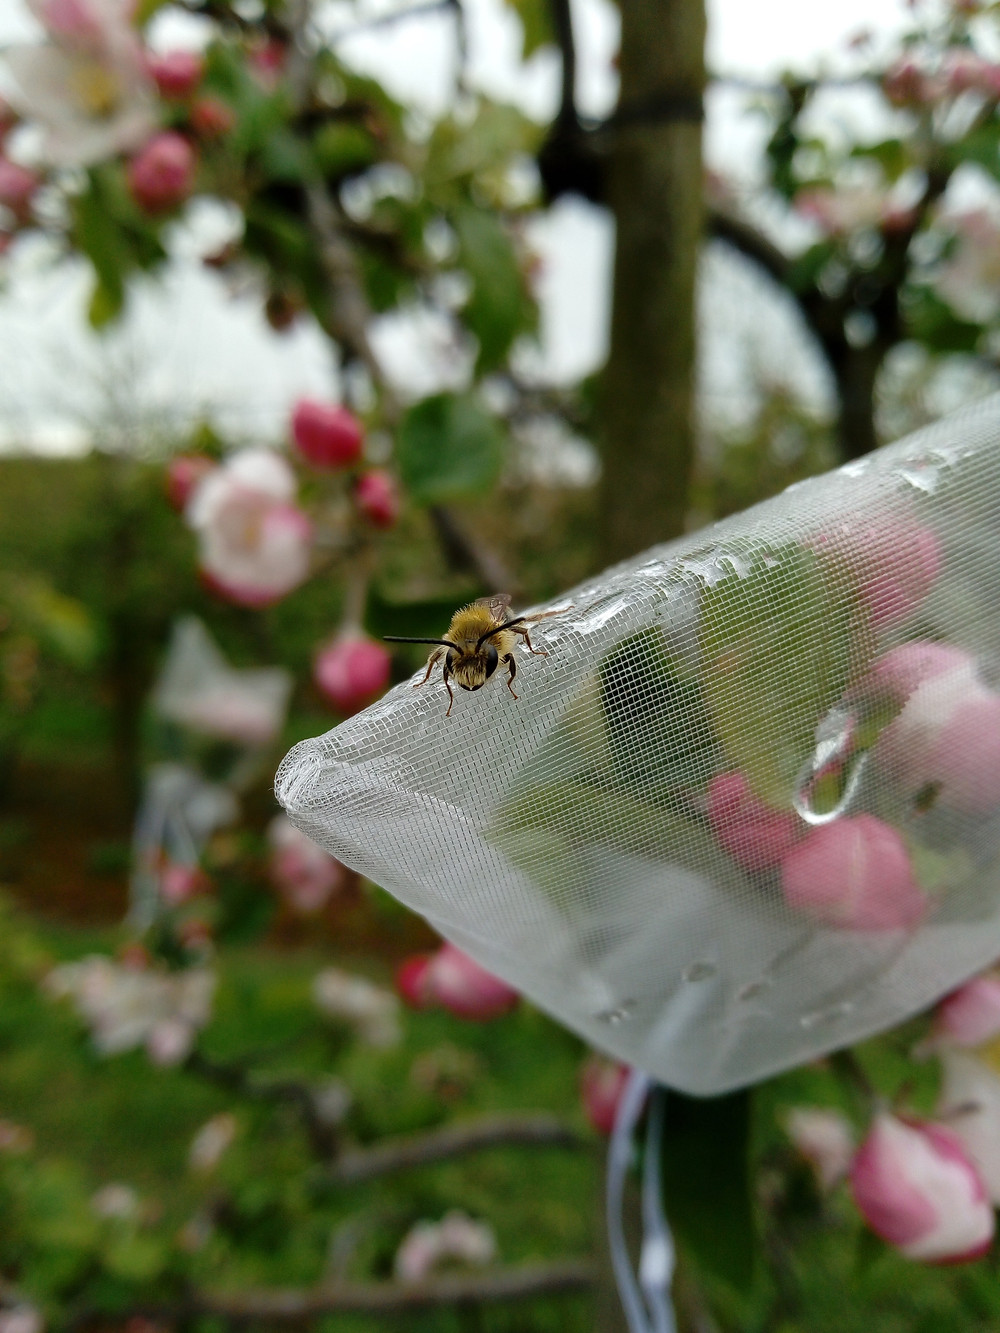 Solitary bee in an apple orchard in Ireland. Male solitary bees do not live in nests and spend the majority of their lives actively searching for females to mate with, so you can often find them slowly warming up on flowers or leaves on chilly mornings. This bee is using one of my pollination experiments as his morning perch. Photo Credit: Katherine Burns